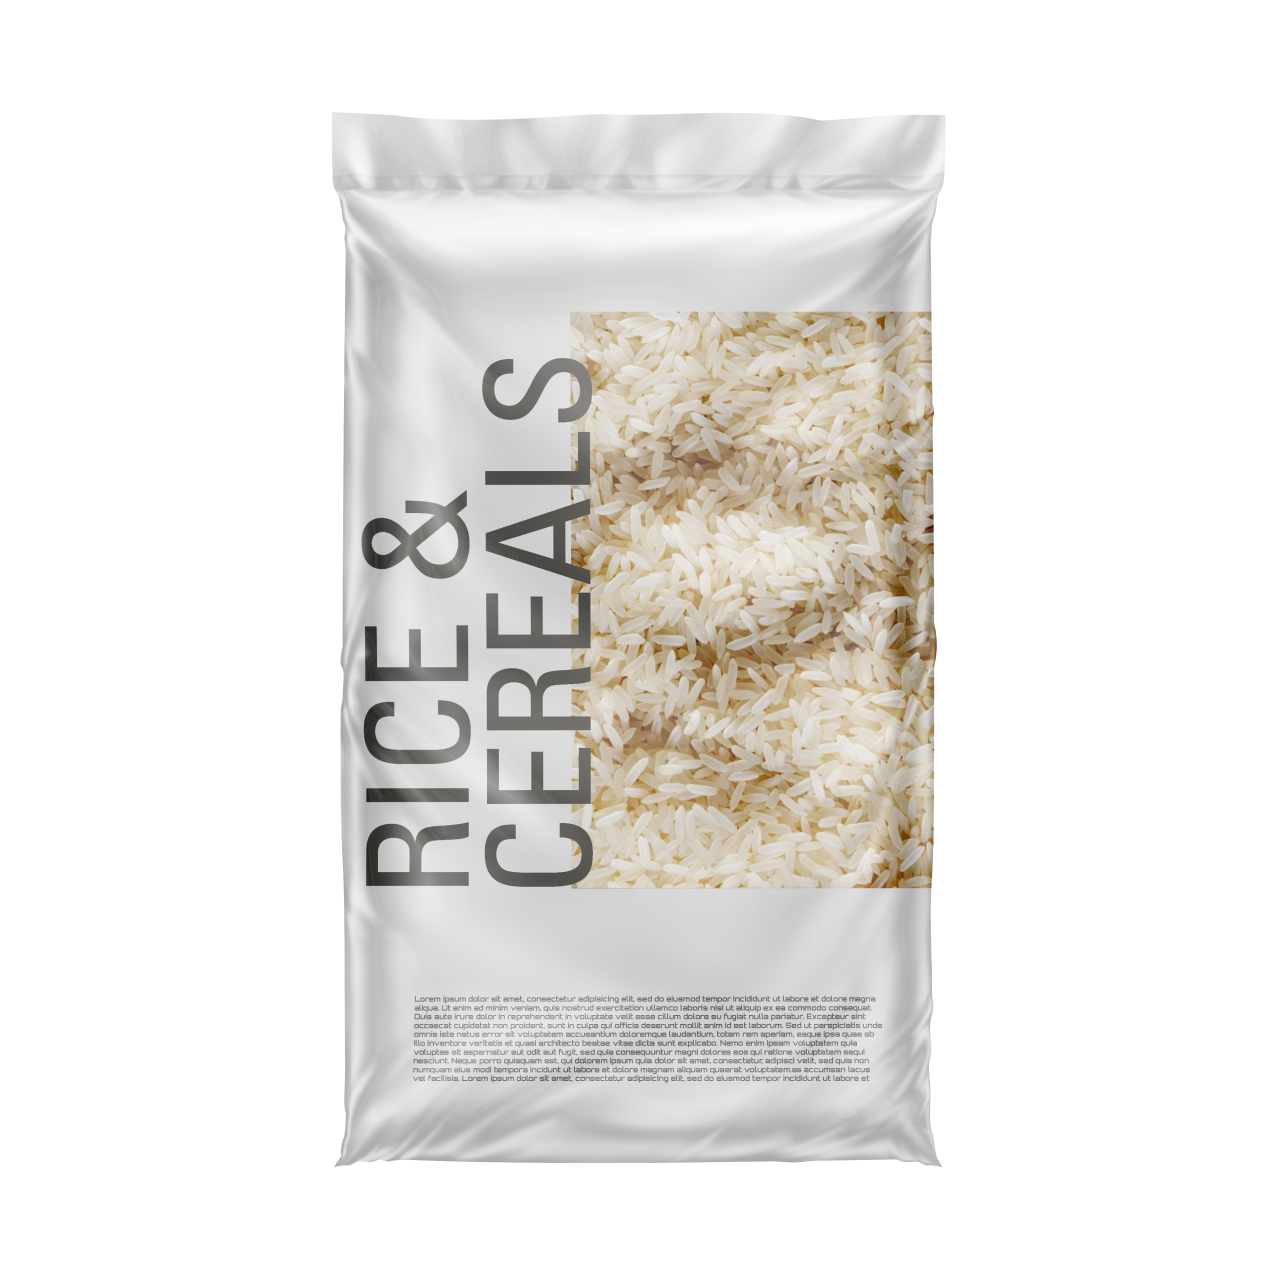 https://www.tmgimpianti.com/wp-content/uploads/2020/06/RICE-BAG-1280x1280.png